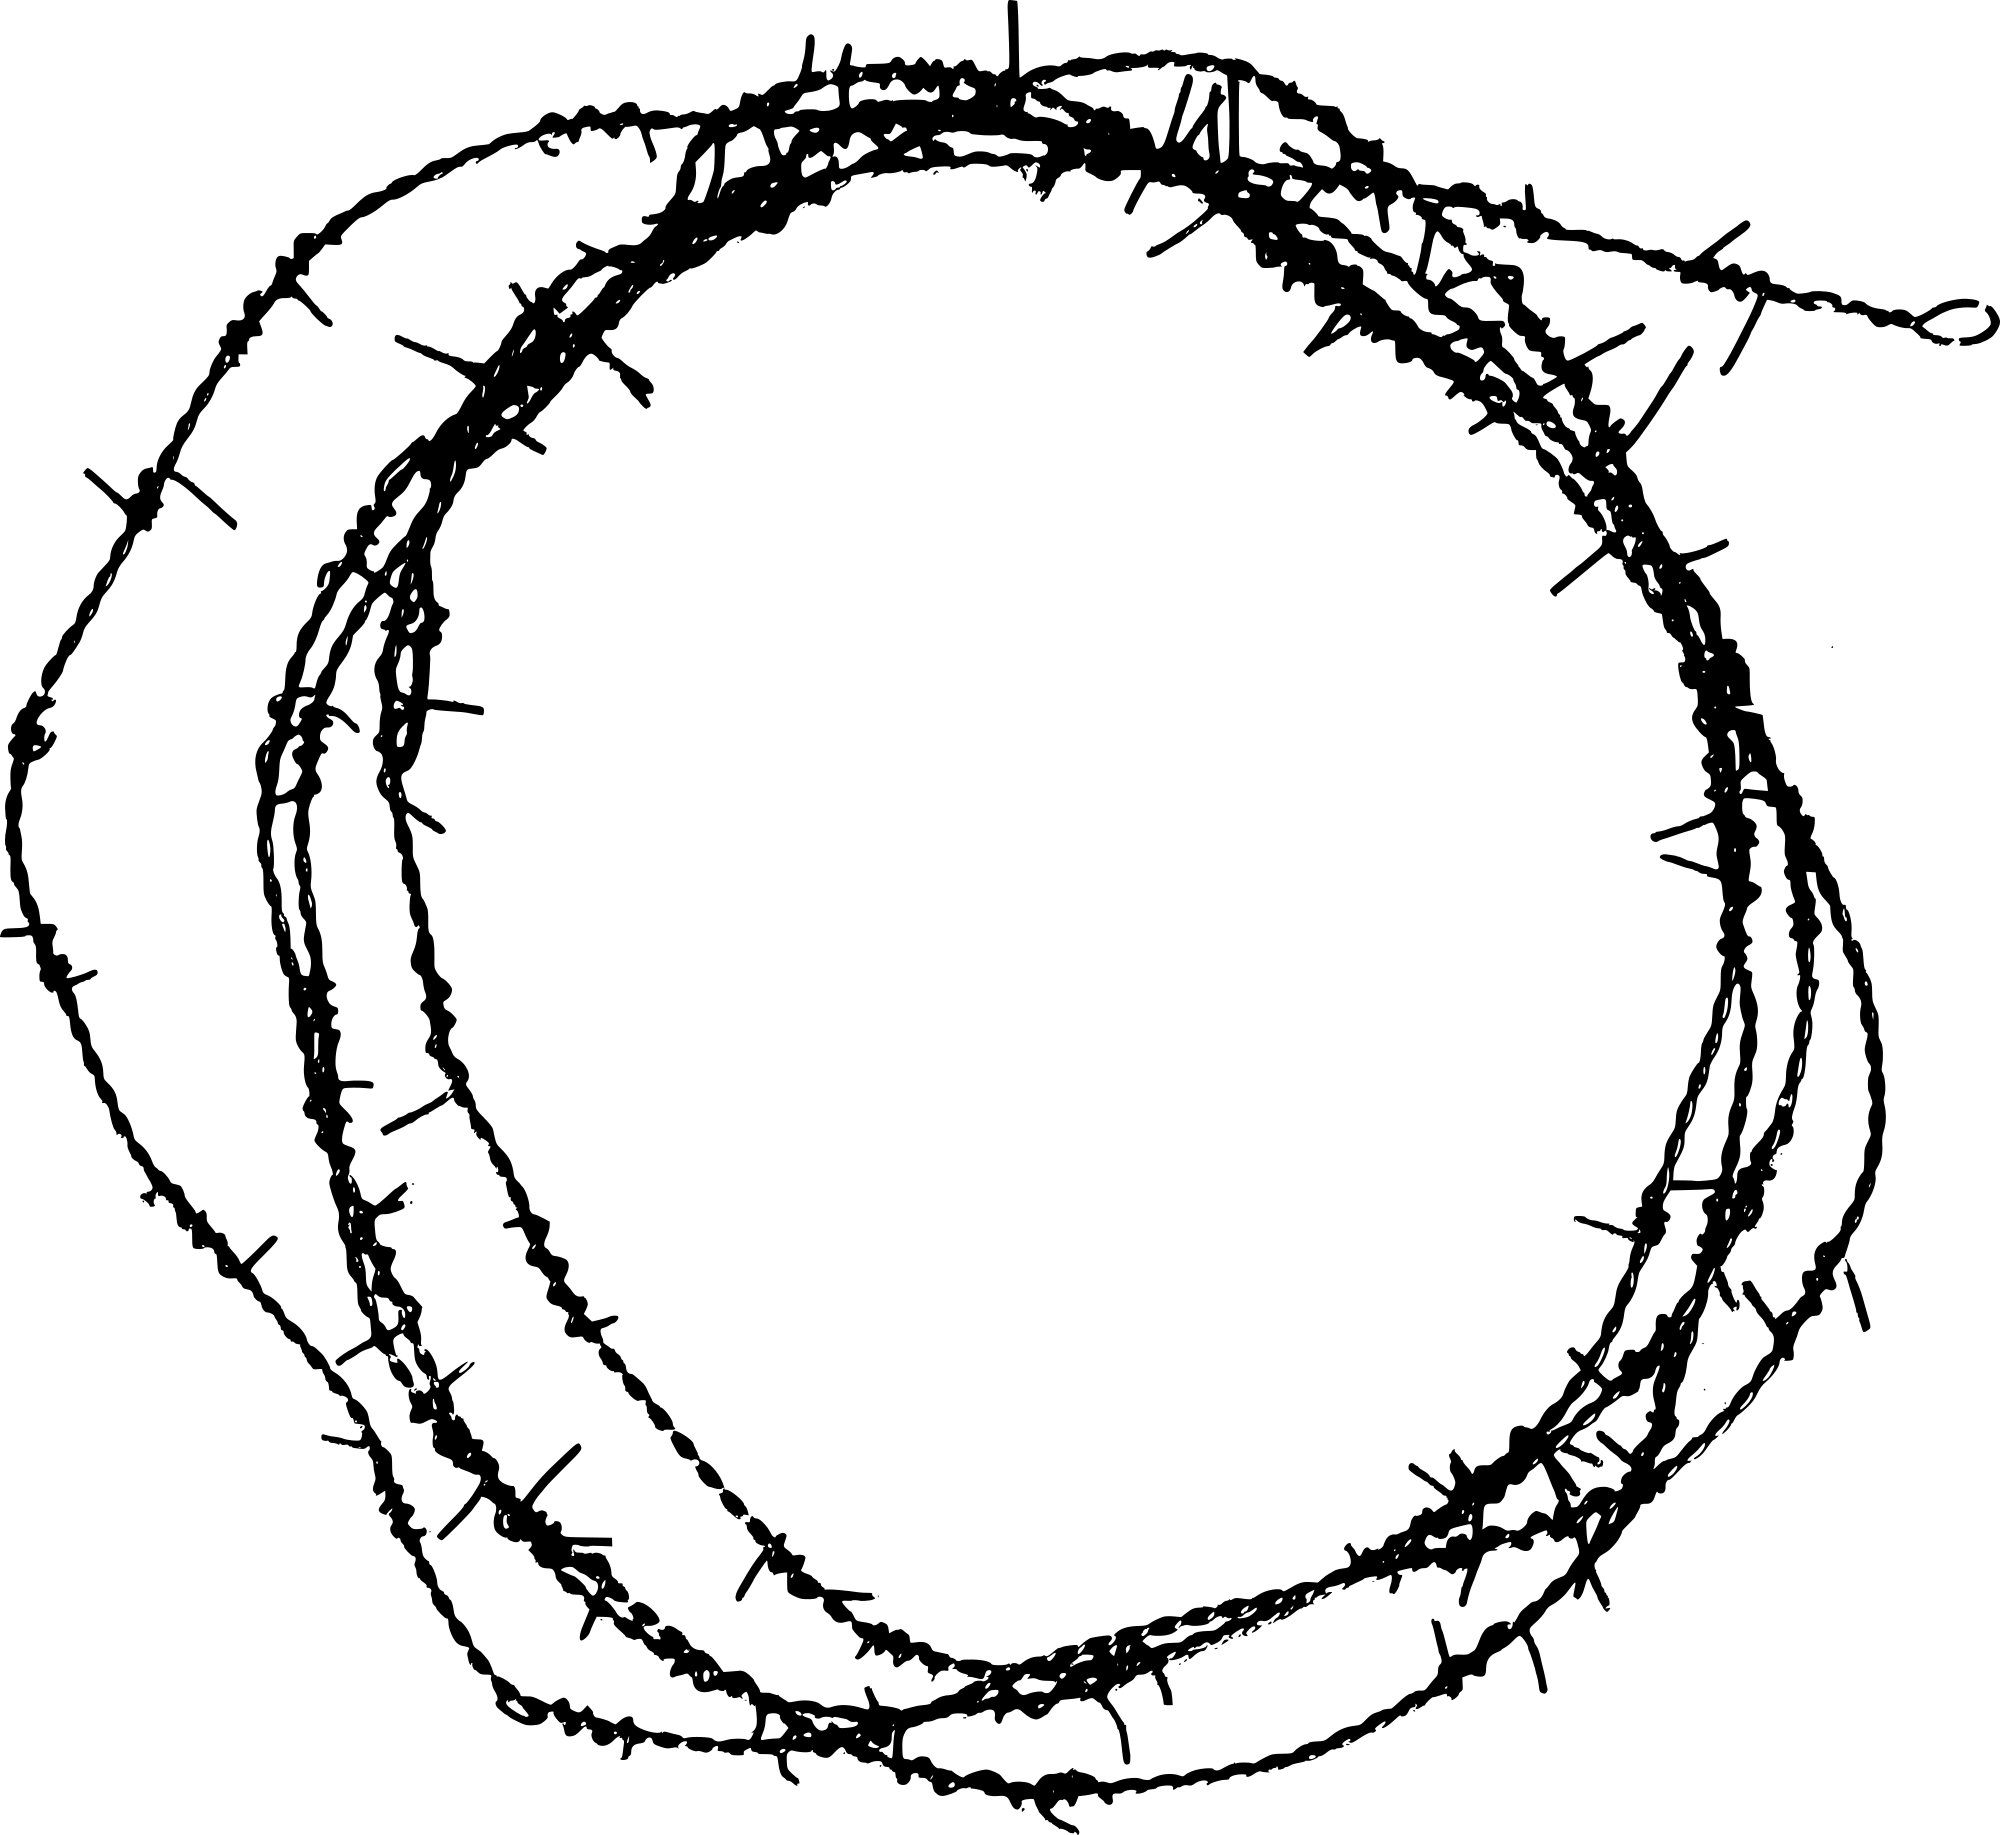 7 Circle Barbed Wire Frame Transparent